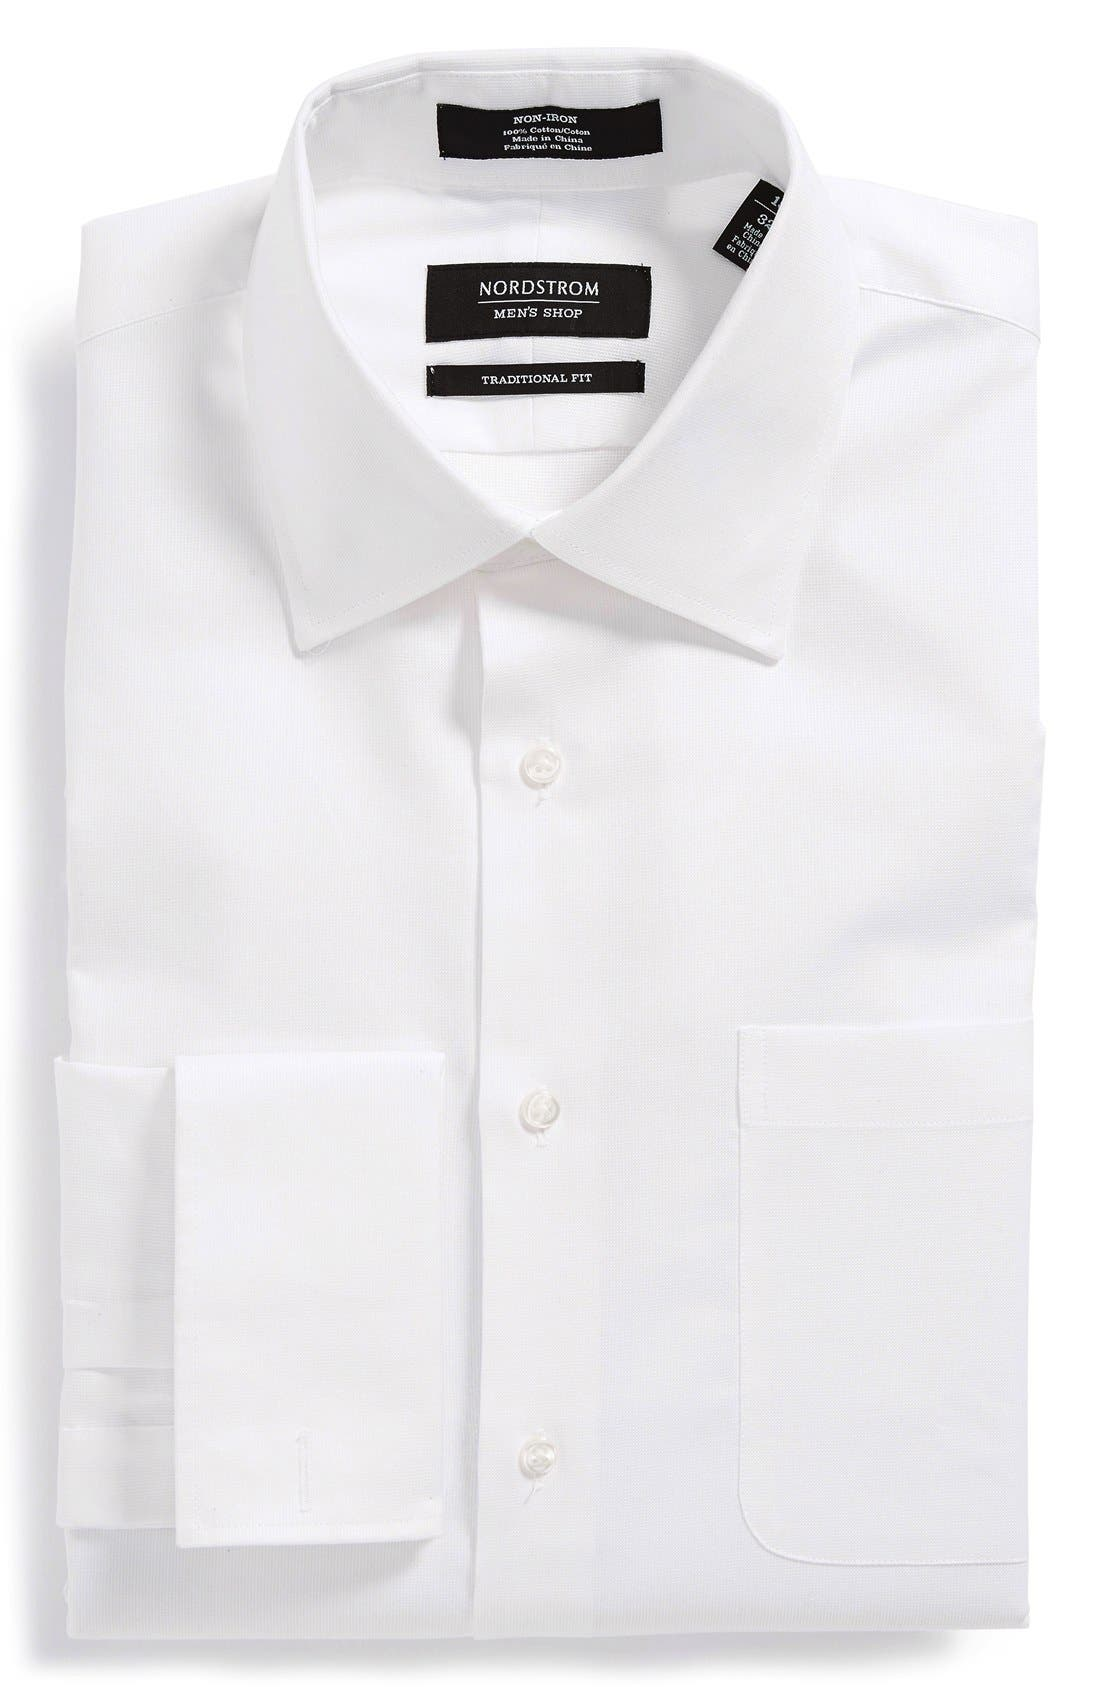 Nordstrom Traditional Fit Non-Iron Dress Shirt,                         Main,                         color, 100